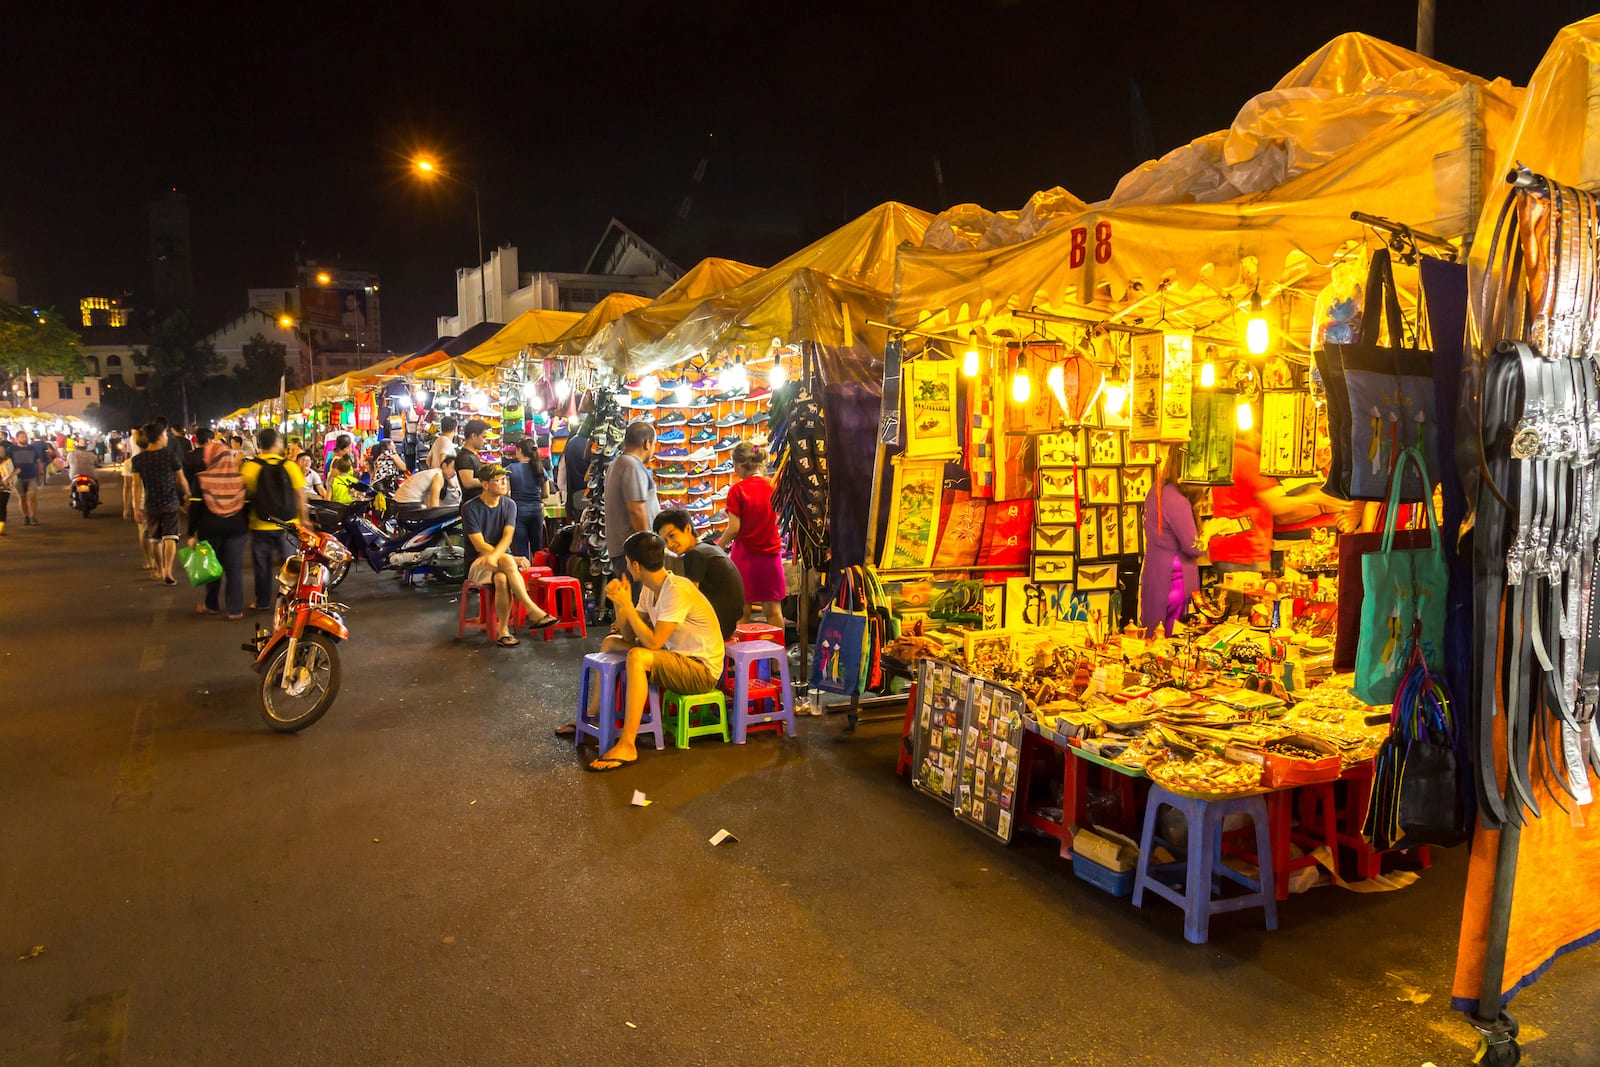 Image of a Night Market near by Ben Thanh Market in Ho Chi Minh City